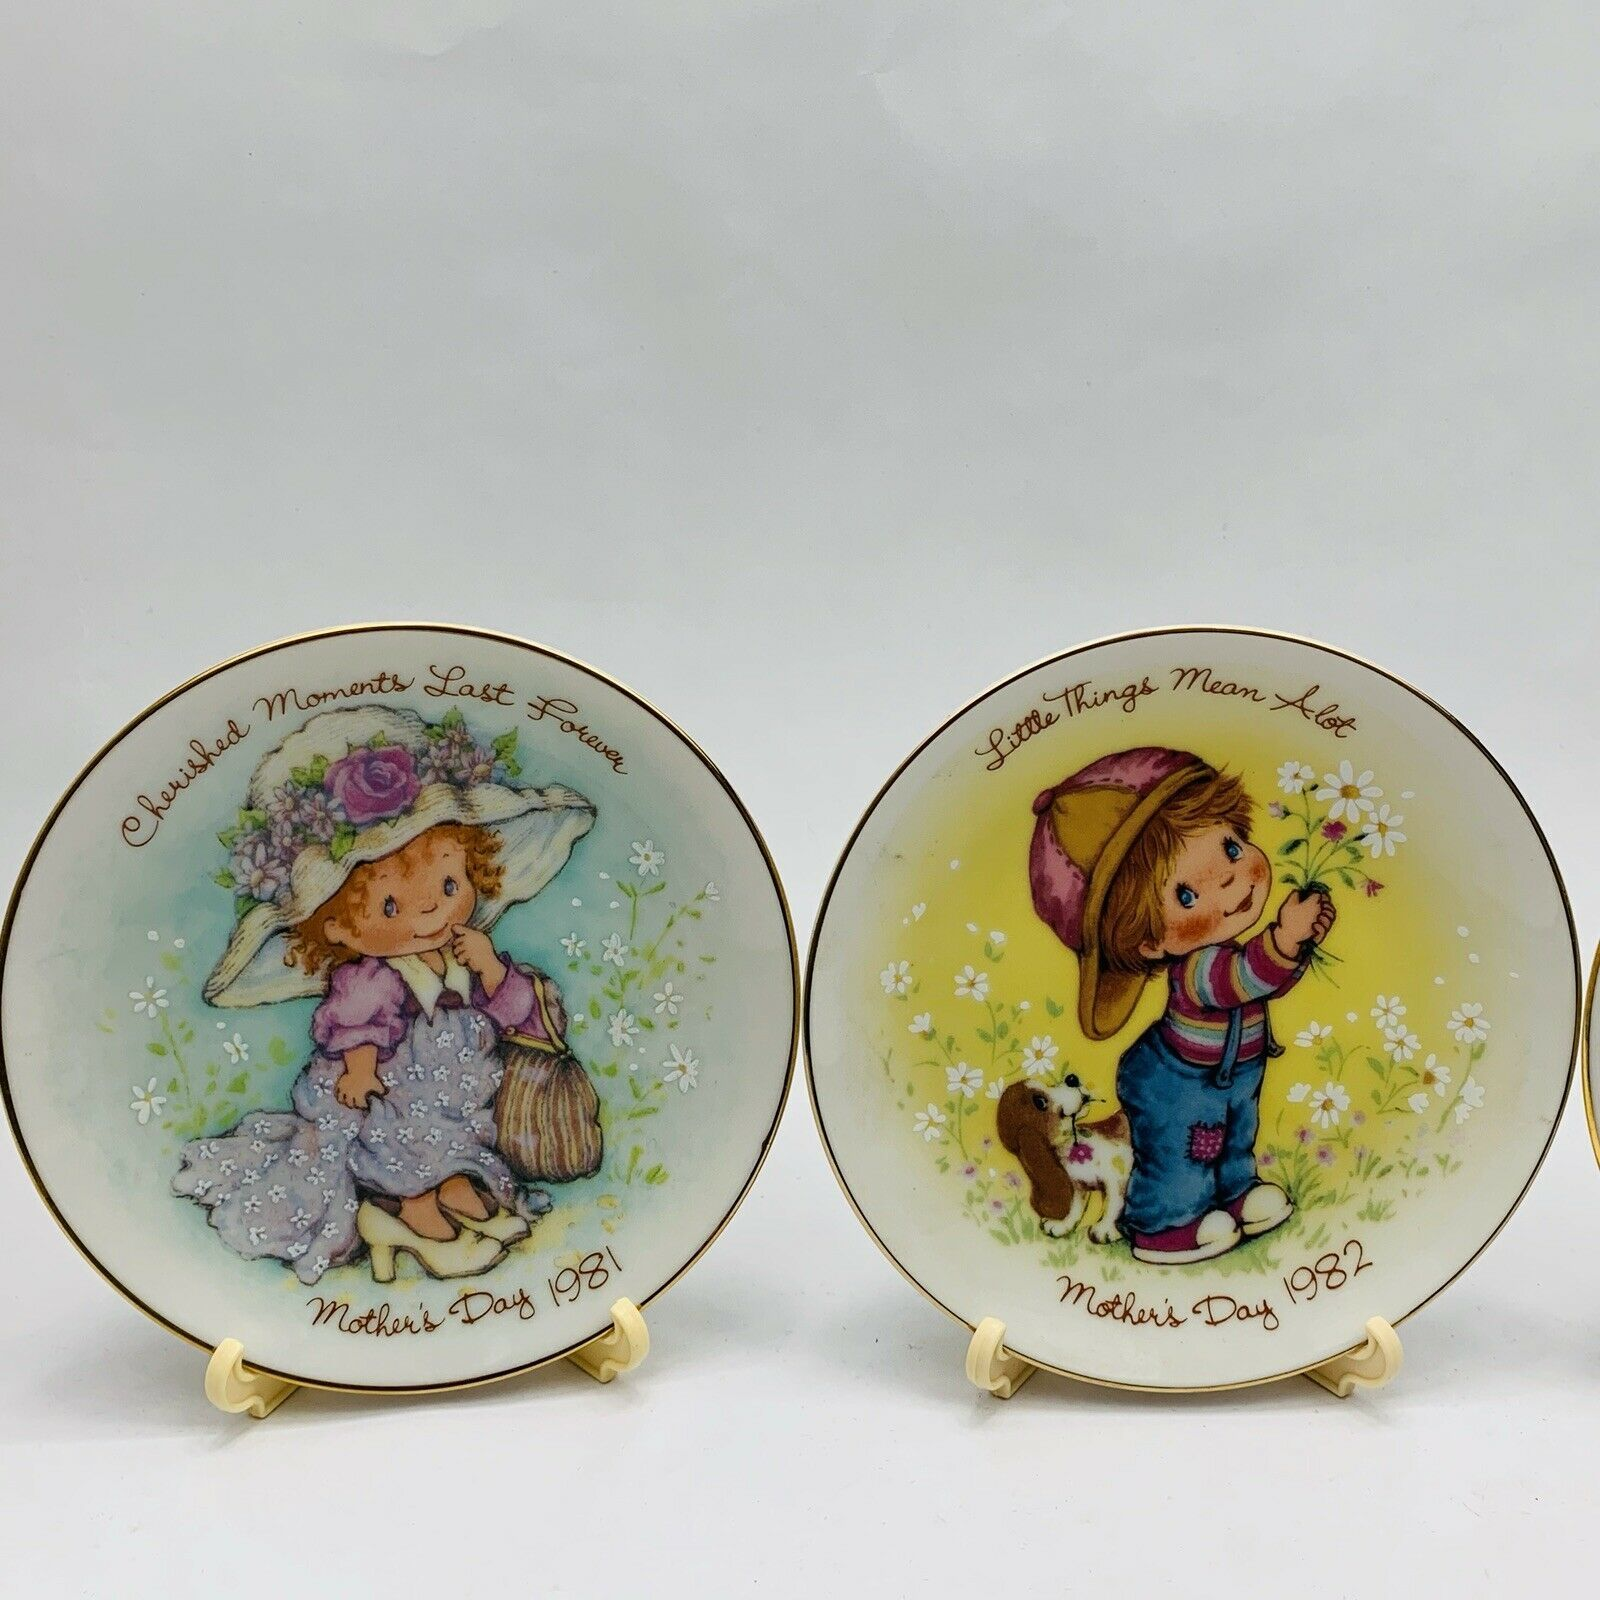 Avon Mothers Day Plates Set of 11 with Easels 1981-1991 image 8